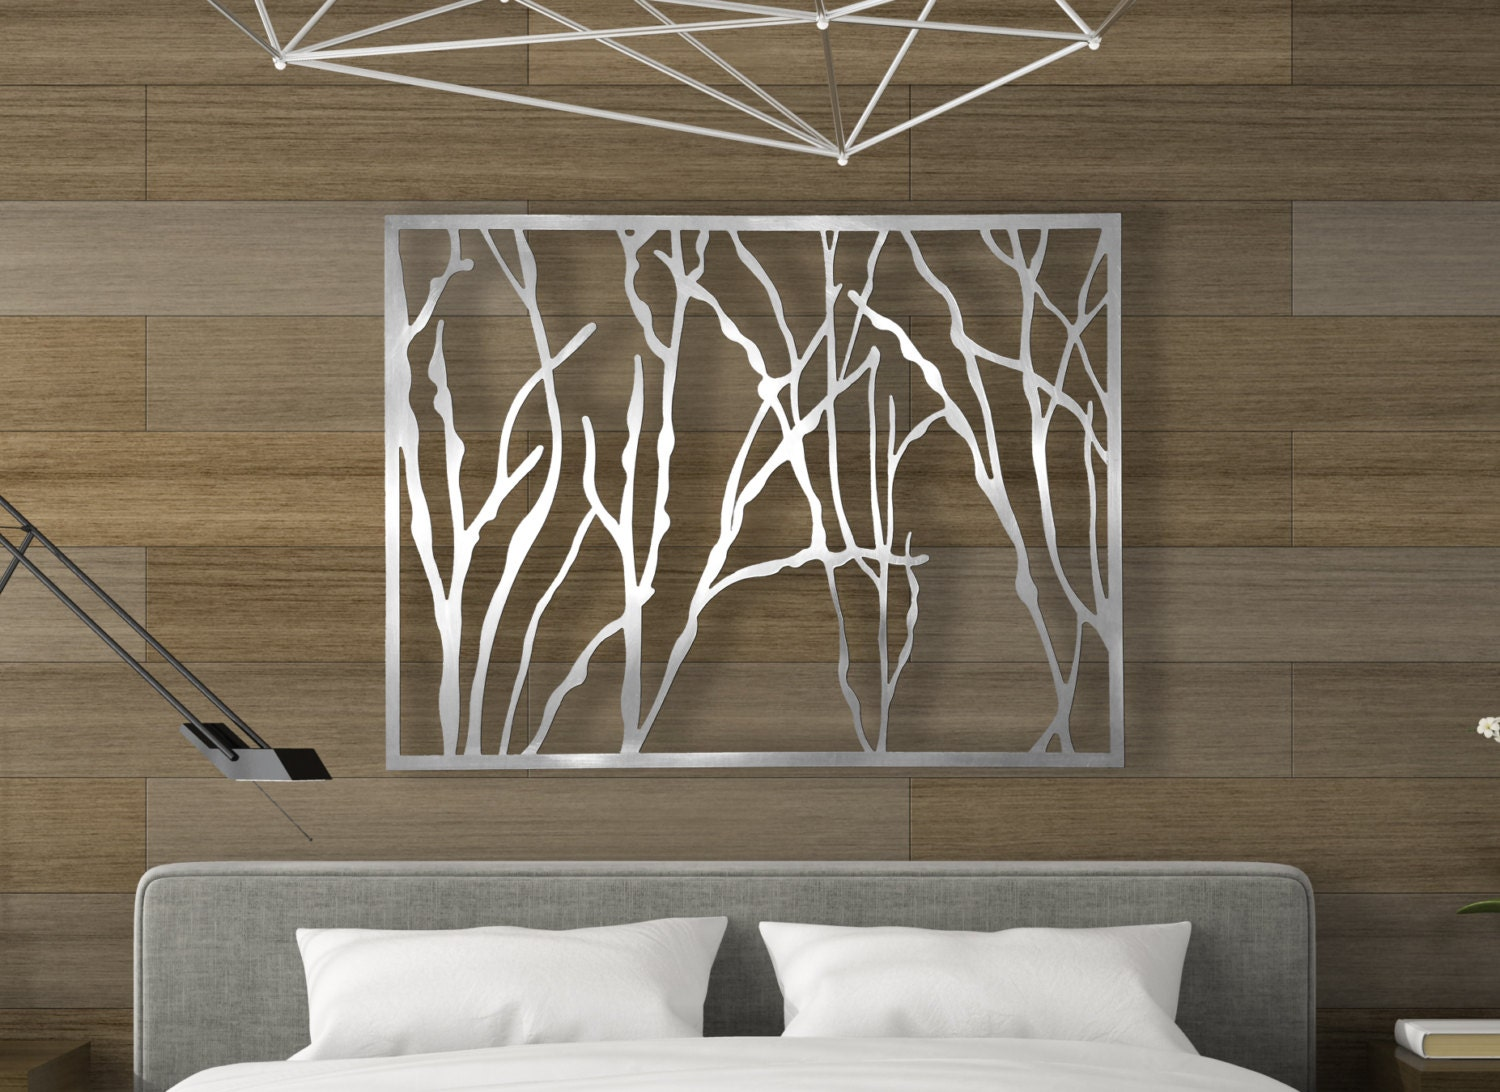 livingroom large metal online room inspiration decor living designs art ideas india diy portrait wall for rooms decors